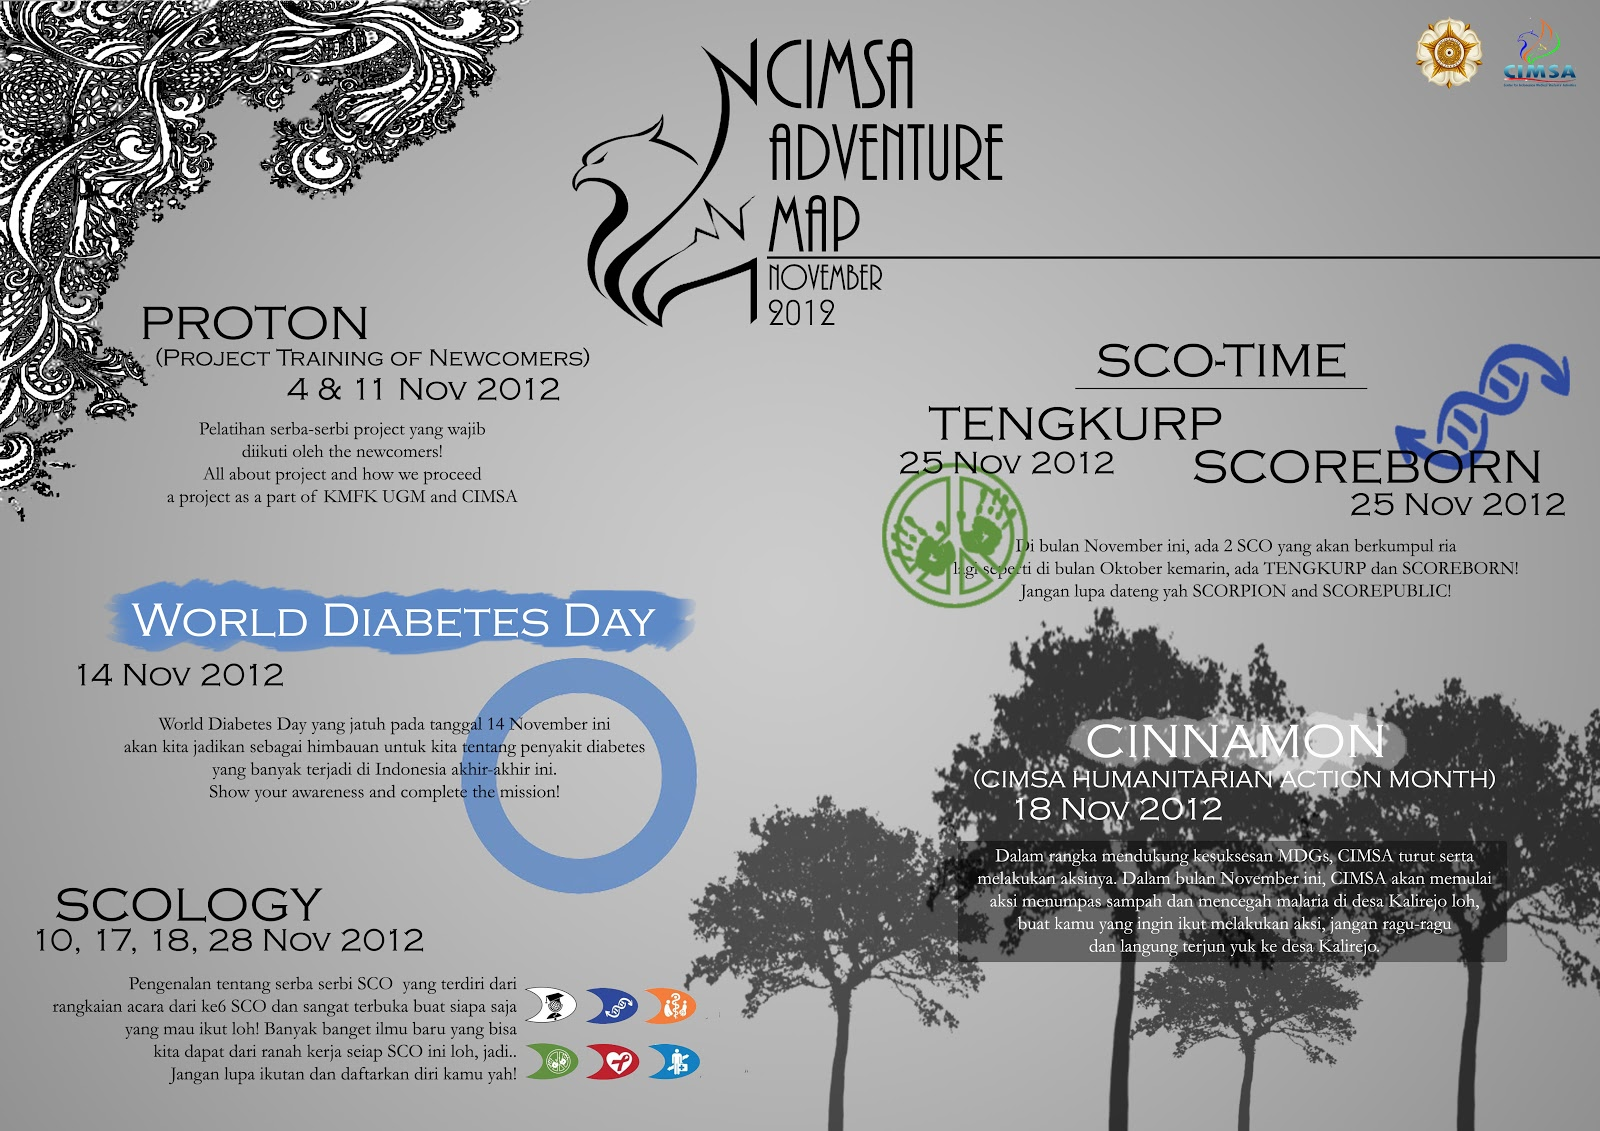 the next great event was called world diabetes day kaukus 5 yippie this event is the scoph s project kaukus 5 means at region 5 which is yogyakarta